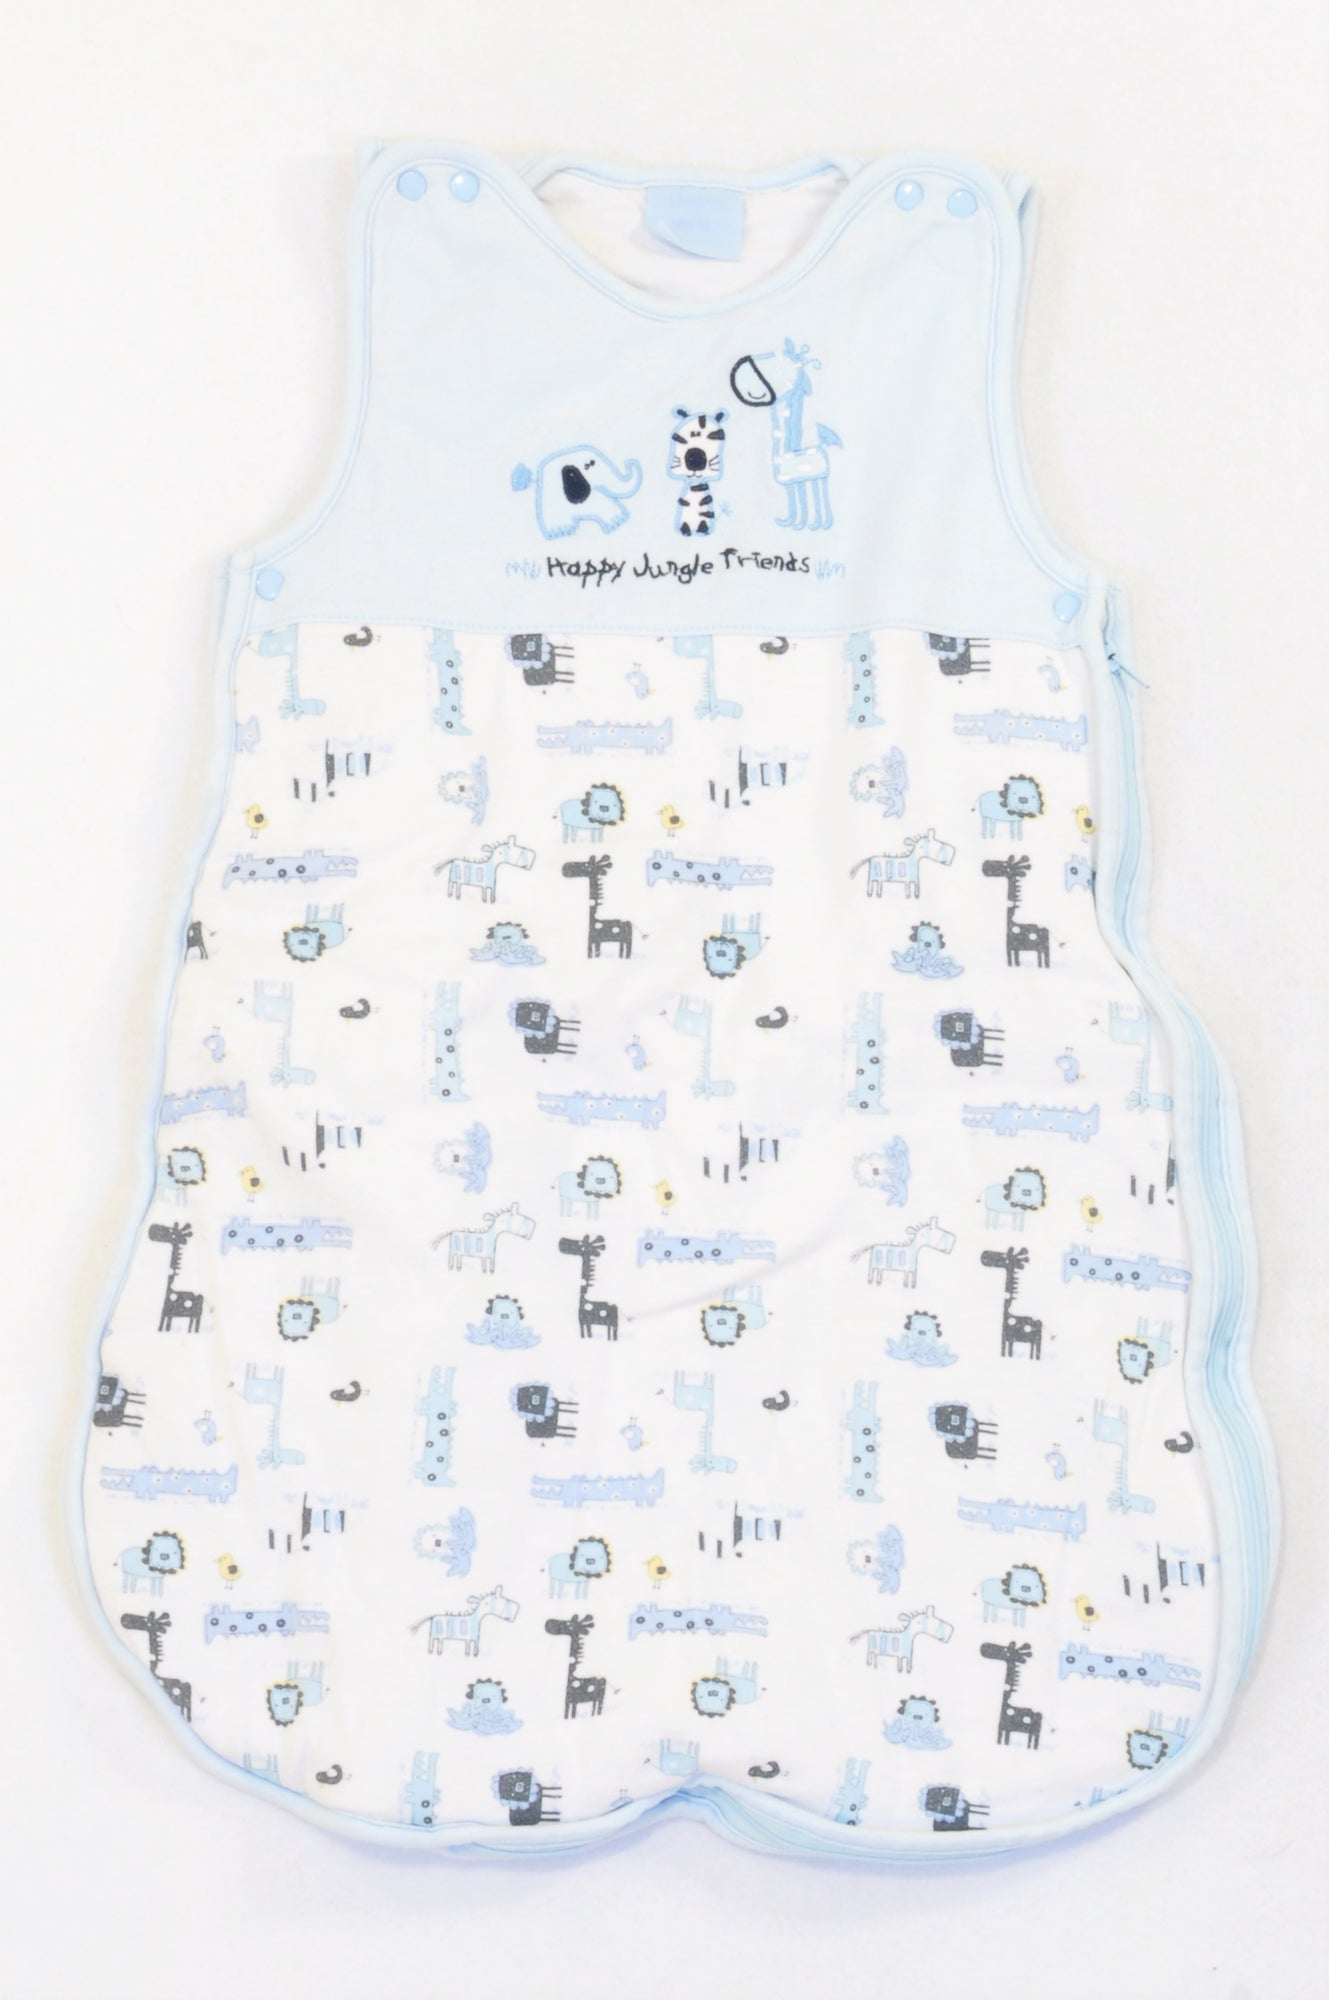 Bebe Bonito Soft Blue Medium Weight Happy Jungle Friends Sleep Sack Boys 0-6 months